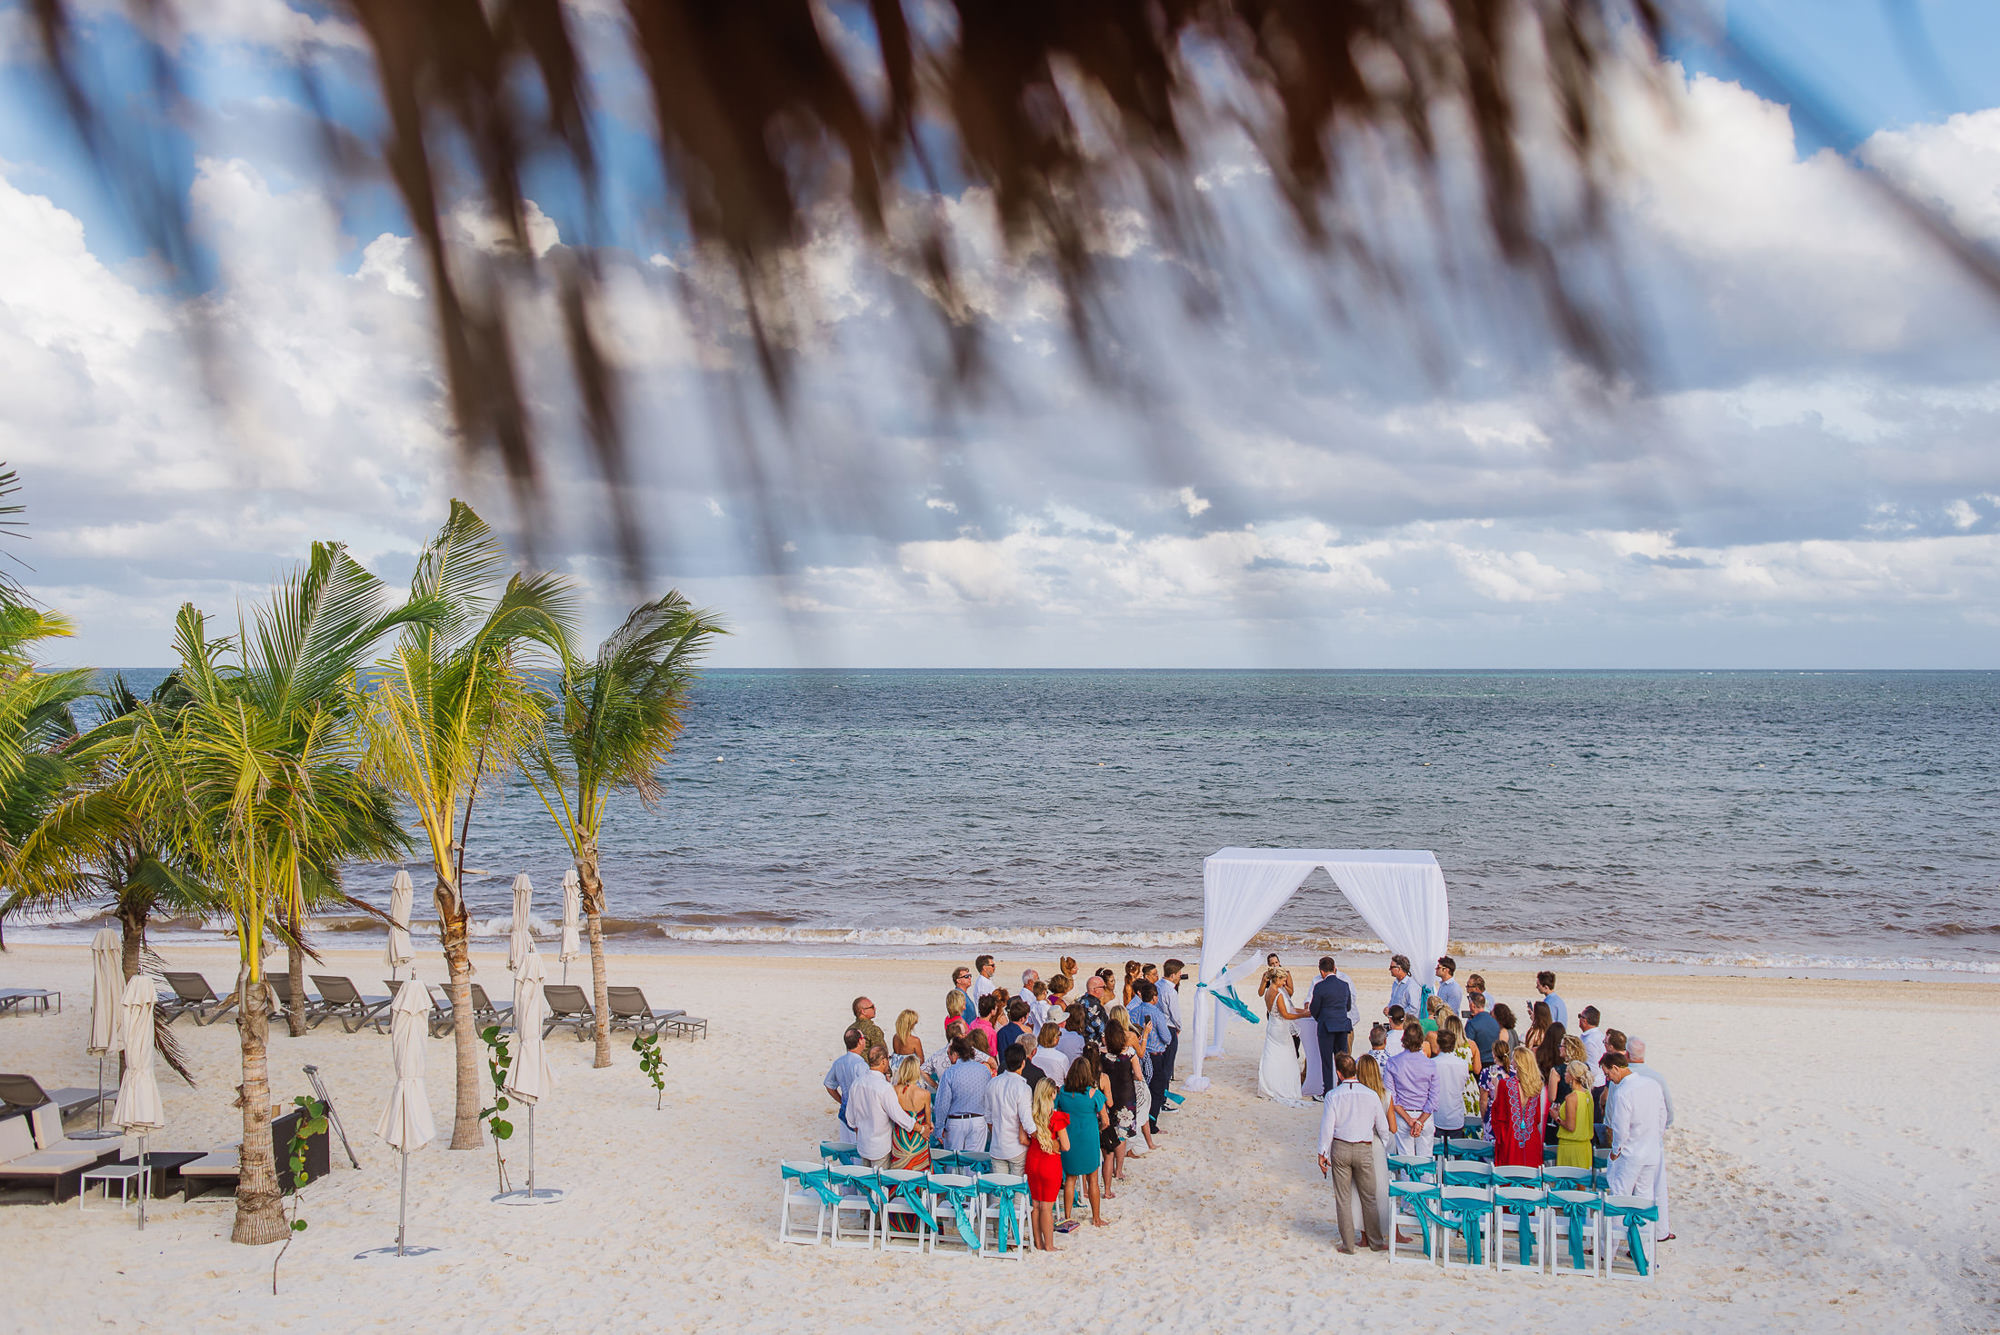 Beach wedding ceremony scene, by Citlalli Rico